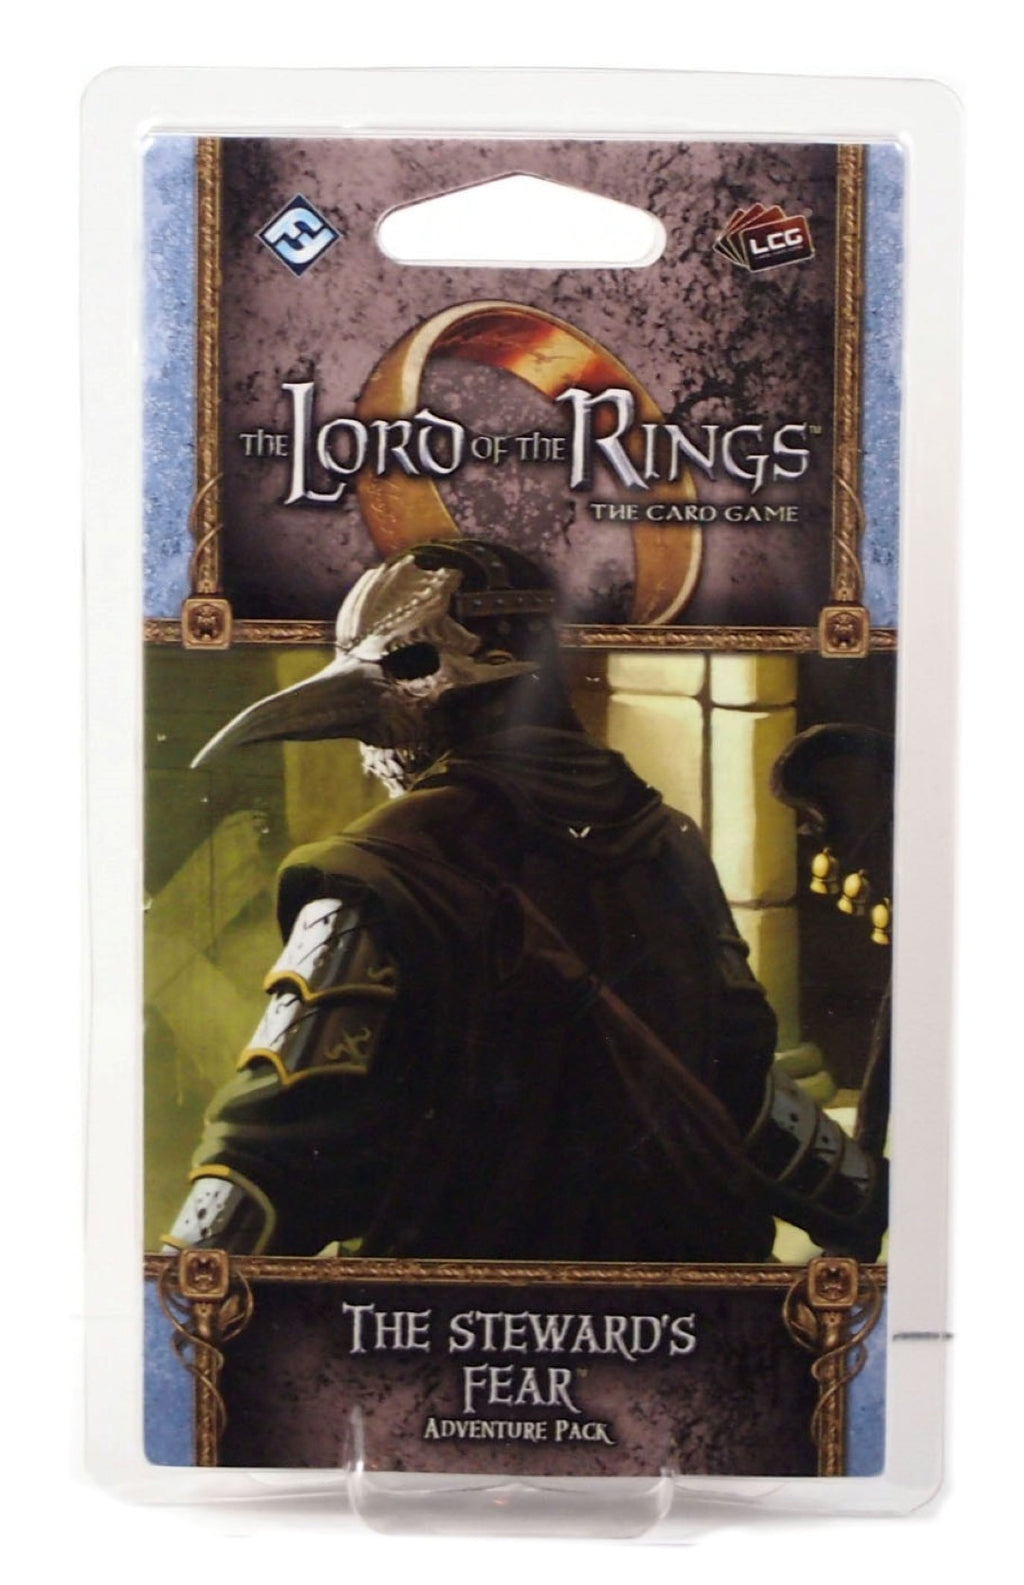 Lord of the Rings LCG, The Steward's Fear Adventure pack